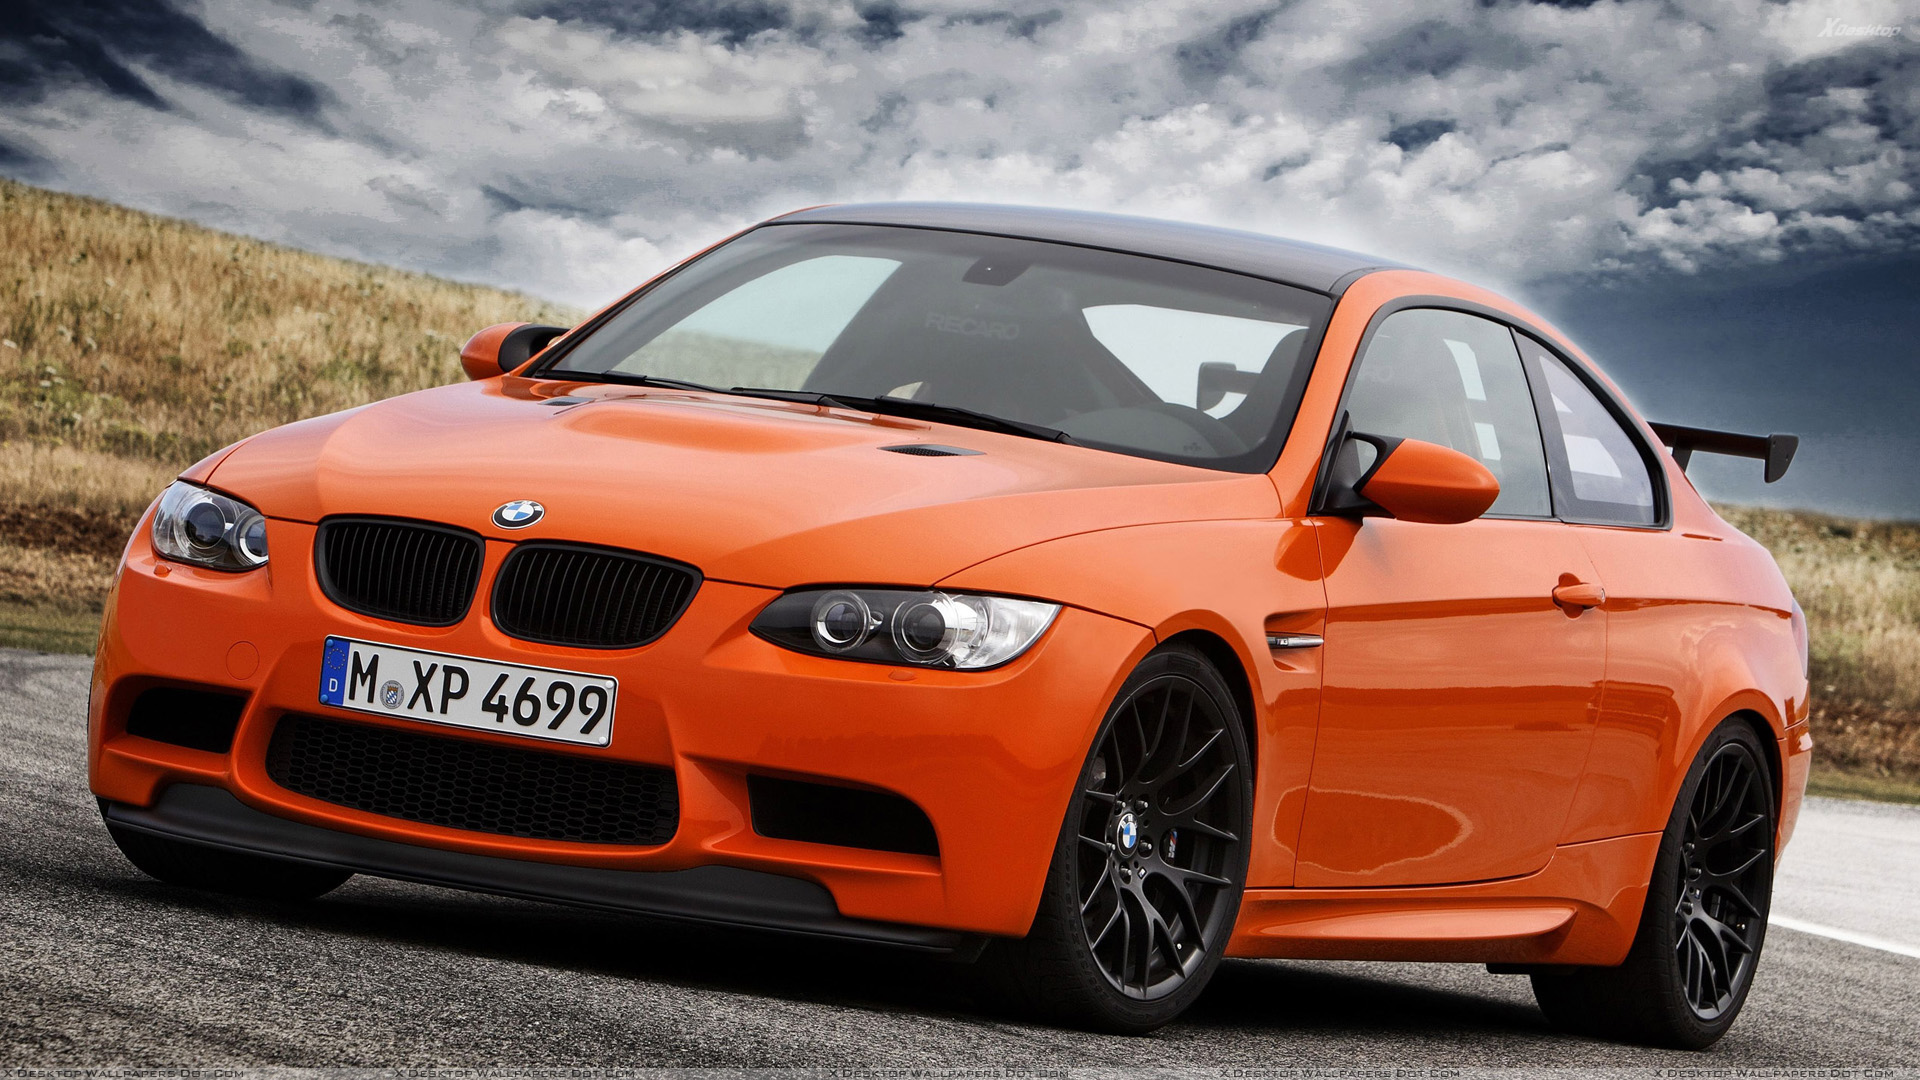 2011 Bmw M3 Gts In Orange At Goodwood Festival Of Speed Wallpaper